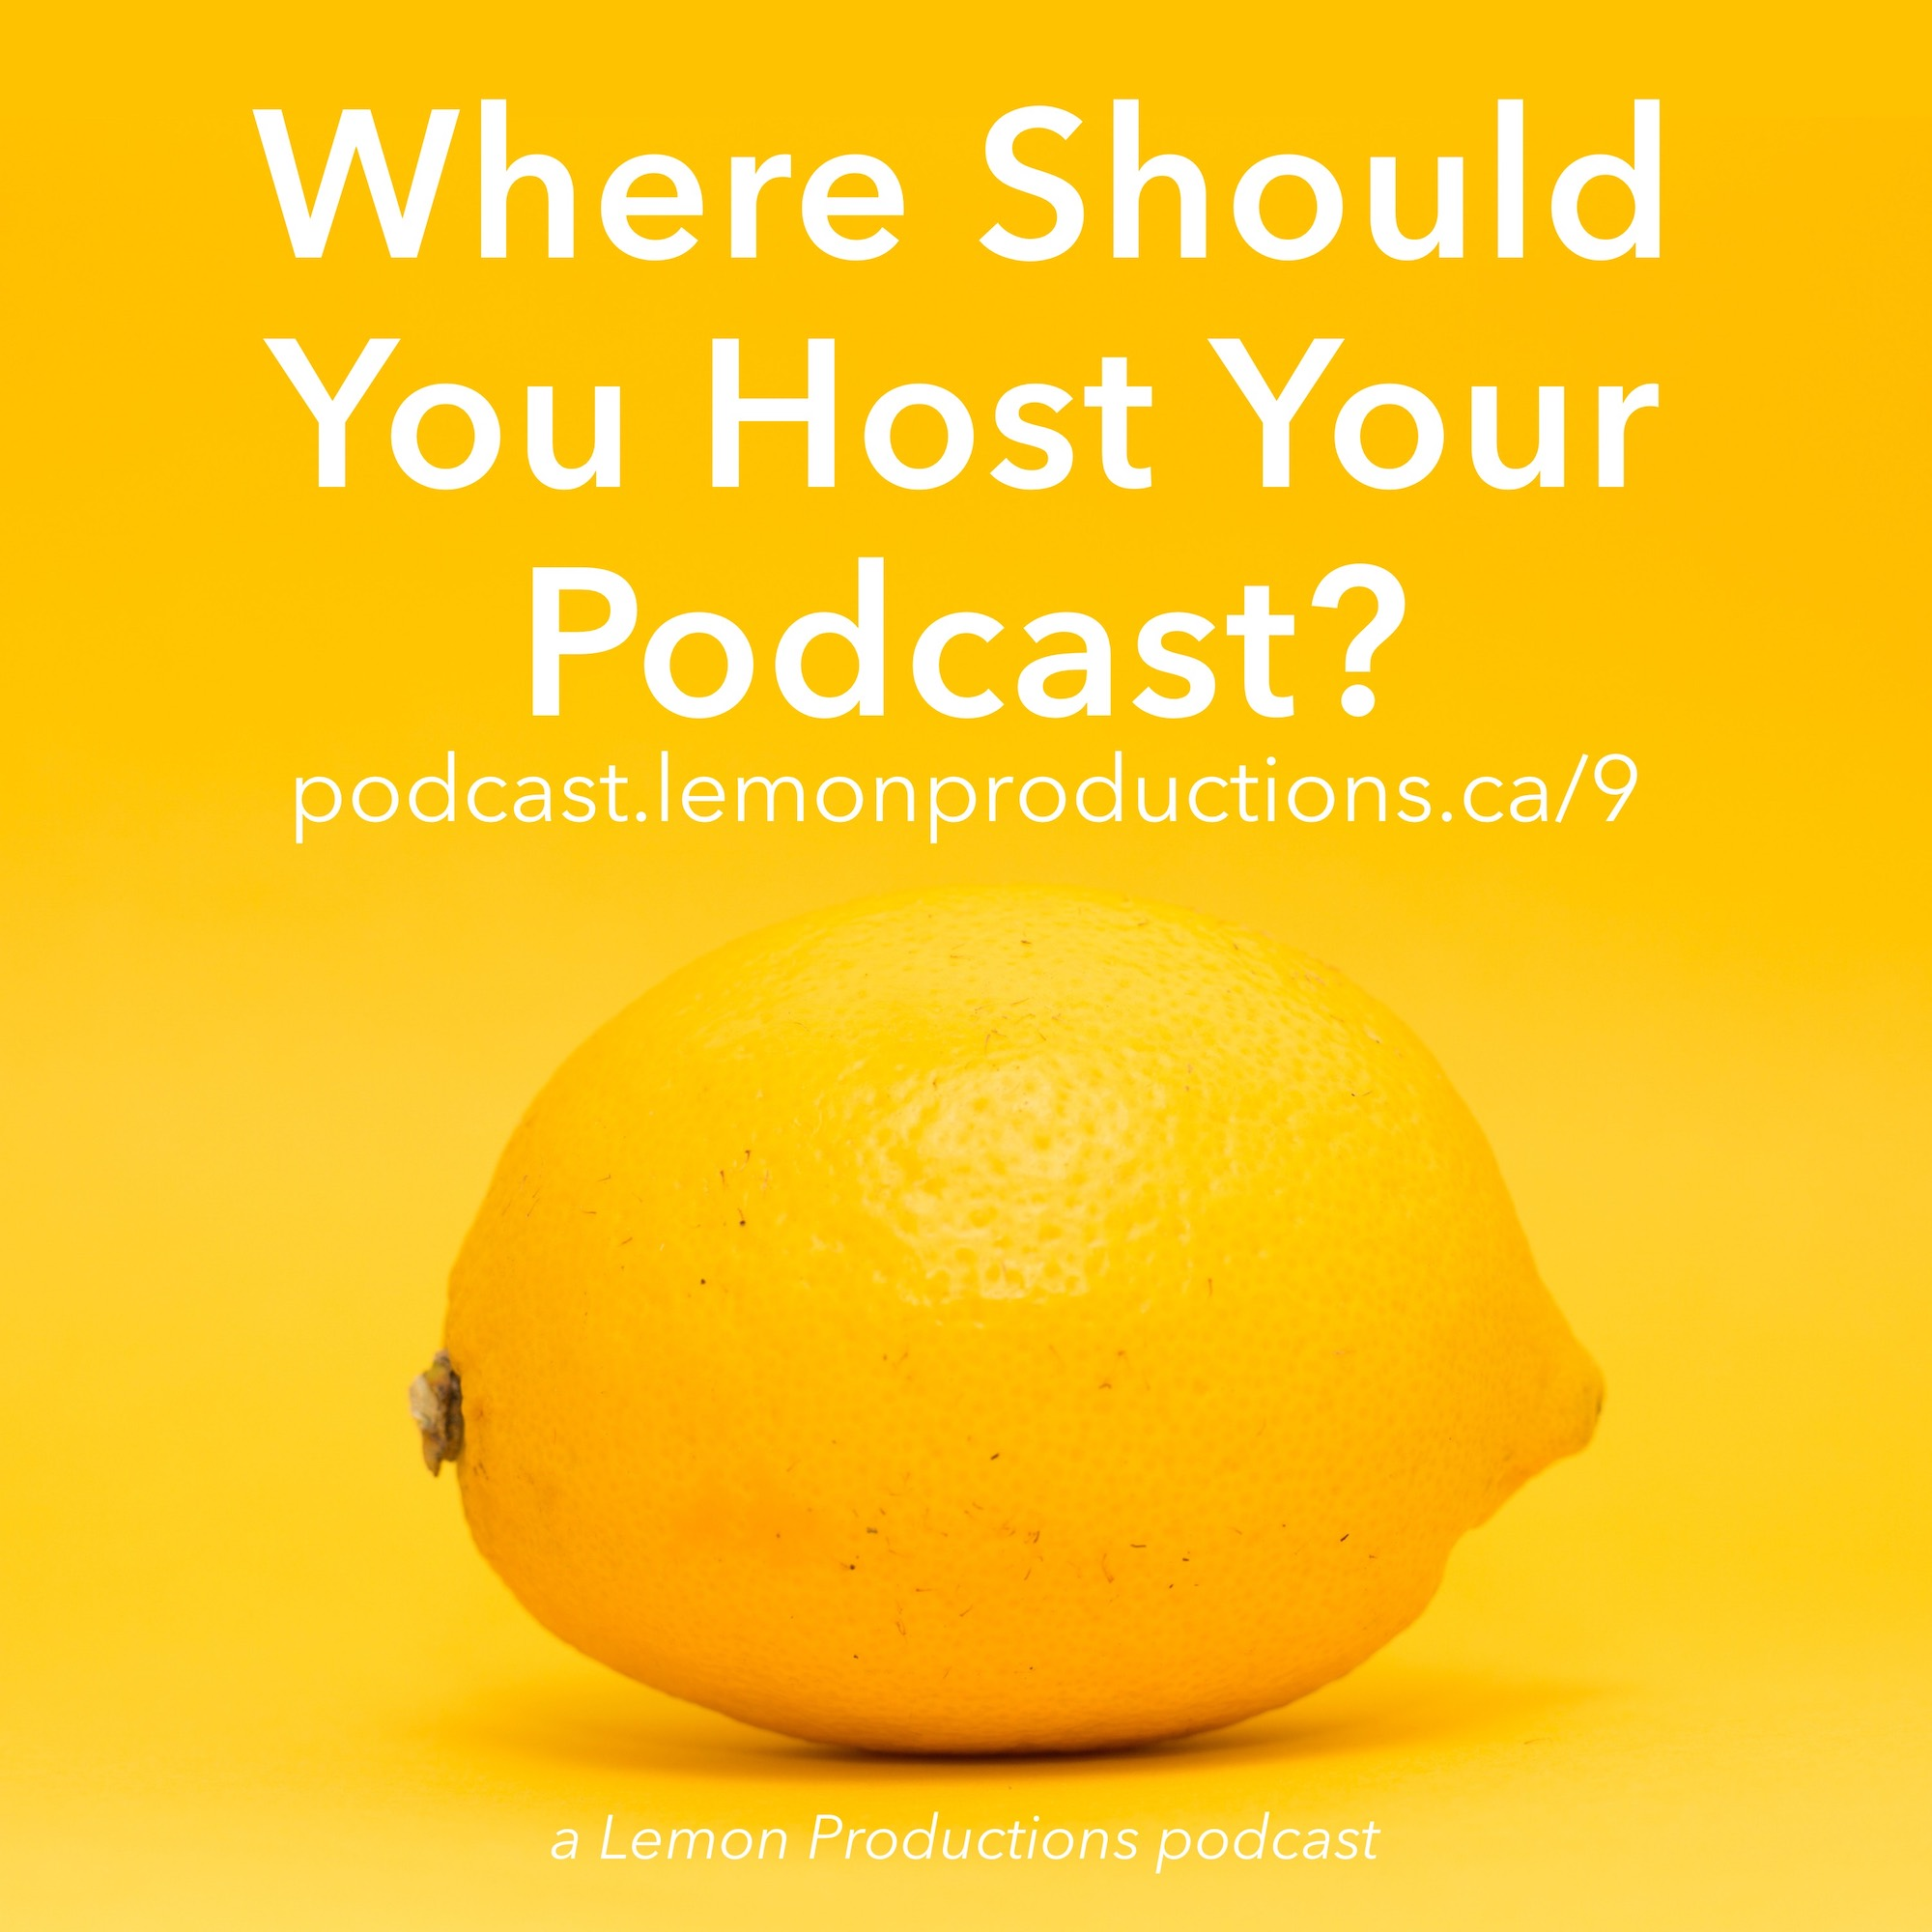 Where Should You Host Your Podcast artwork